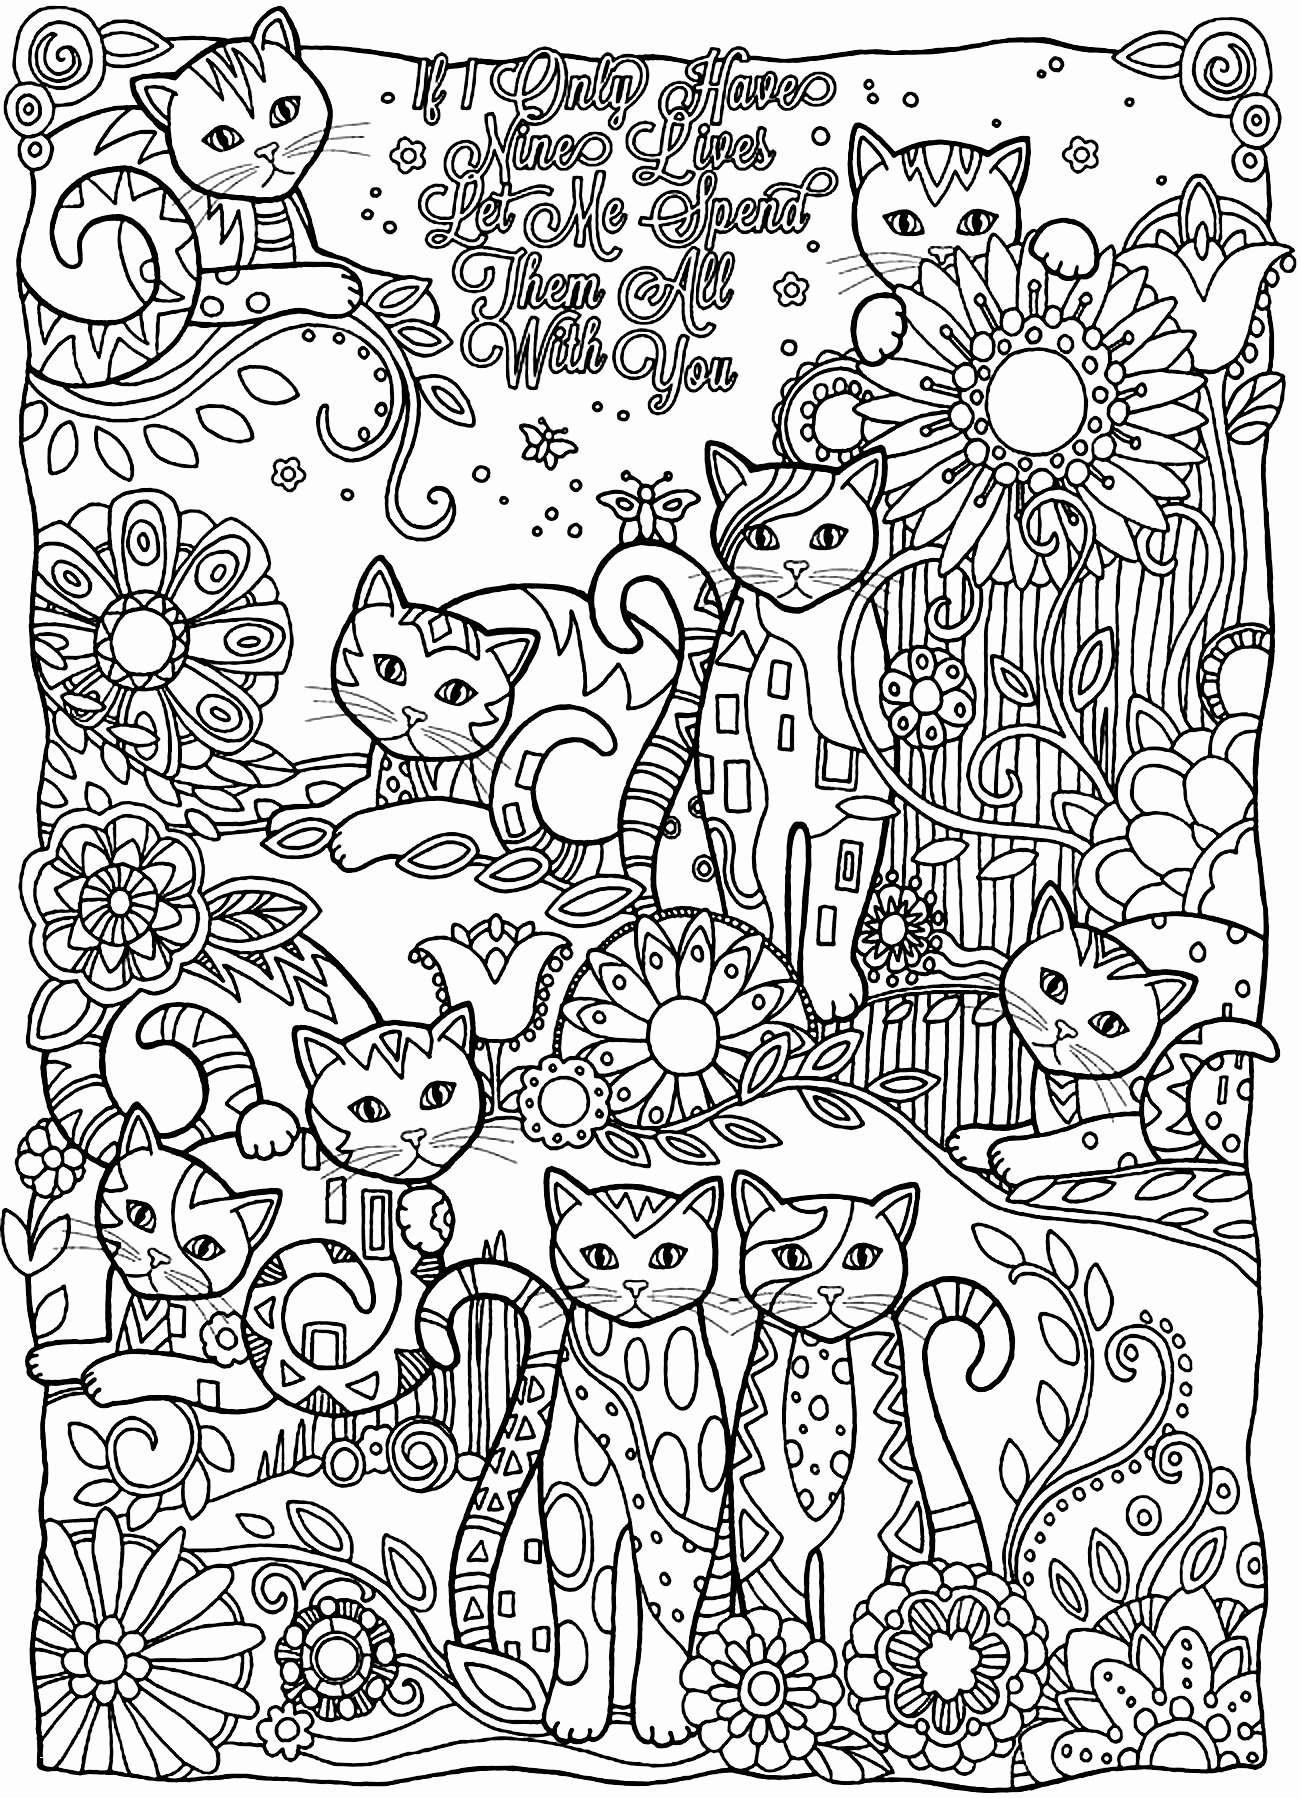 Letter B Coloring Pages - Coloring Pages Letter B Letter B Coloring Pages Fresh Adult Coloring